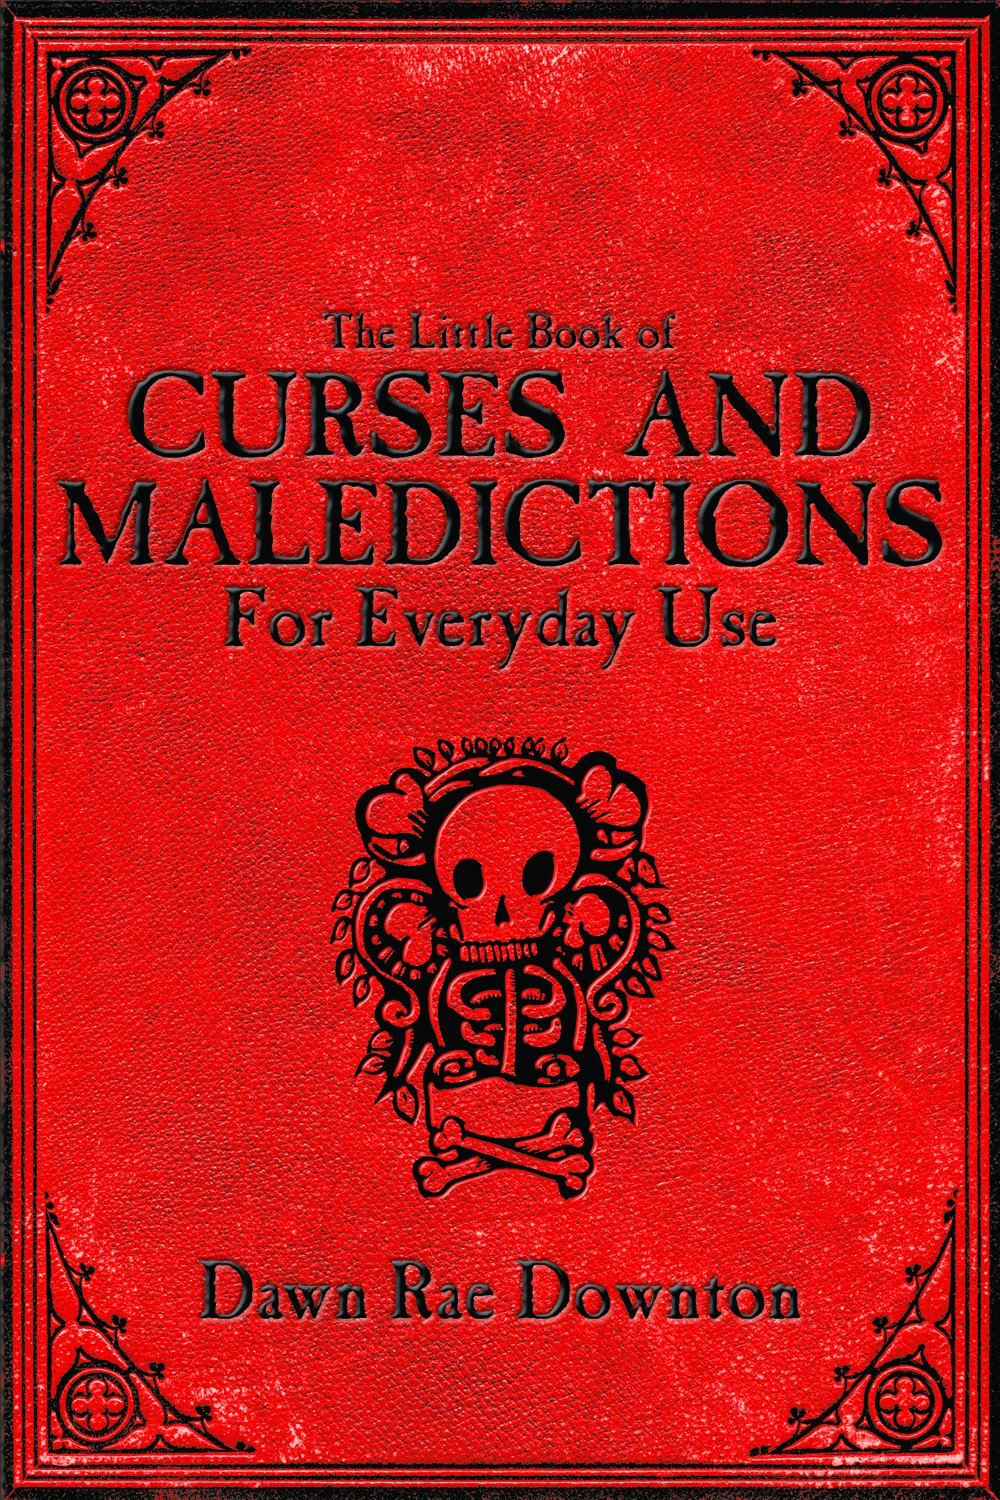 The Little Book Of Curses And Maledictions for Everyday Use By: Dawn Rae Downton